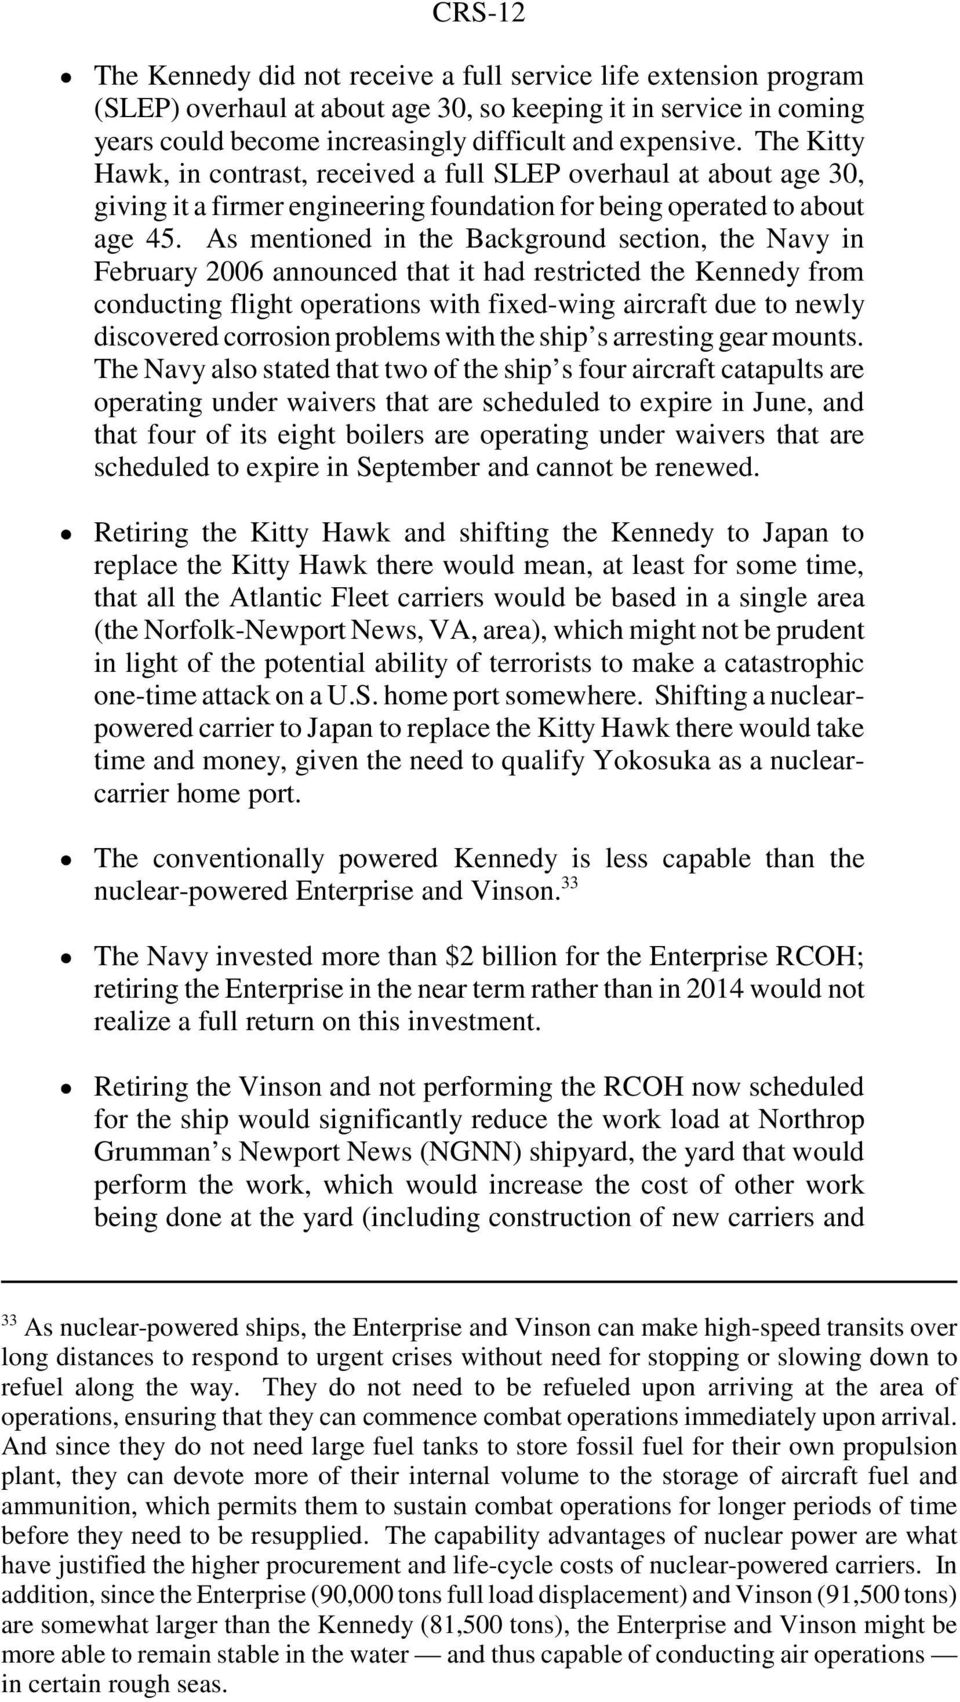 As mentioned in the Background section, the Navy in February 2006 announced that it had restricted the Kennedy from conducting flight operations with fixed-wing aircraft due to newly discovered